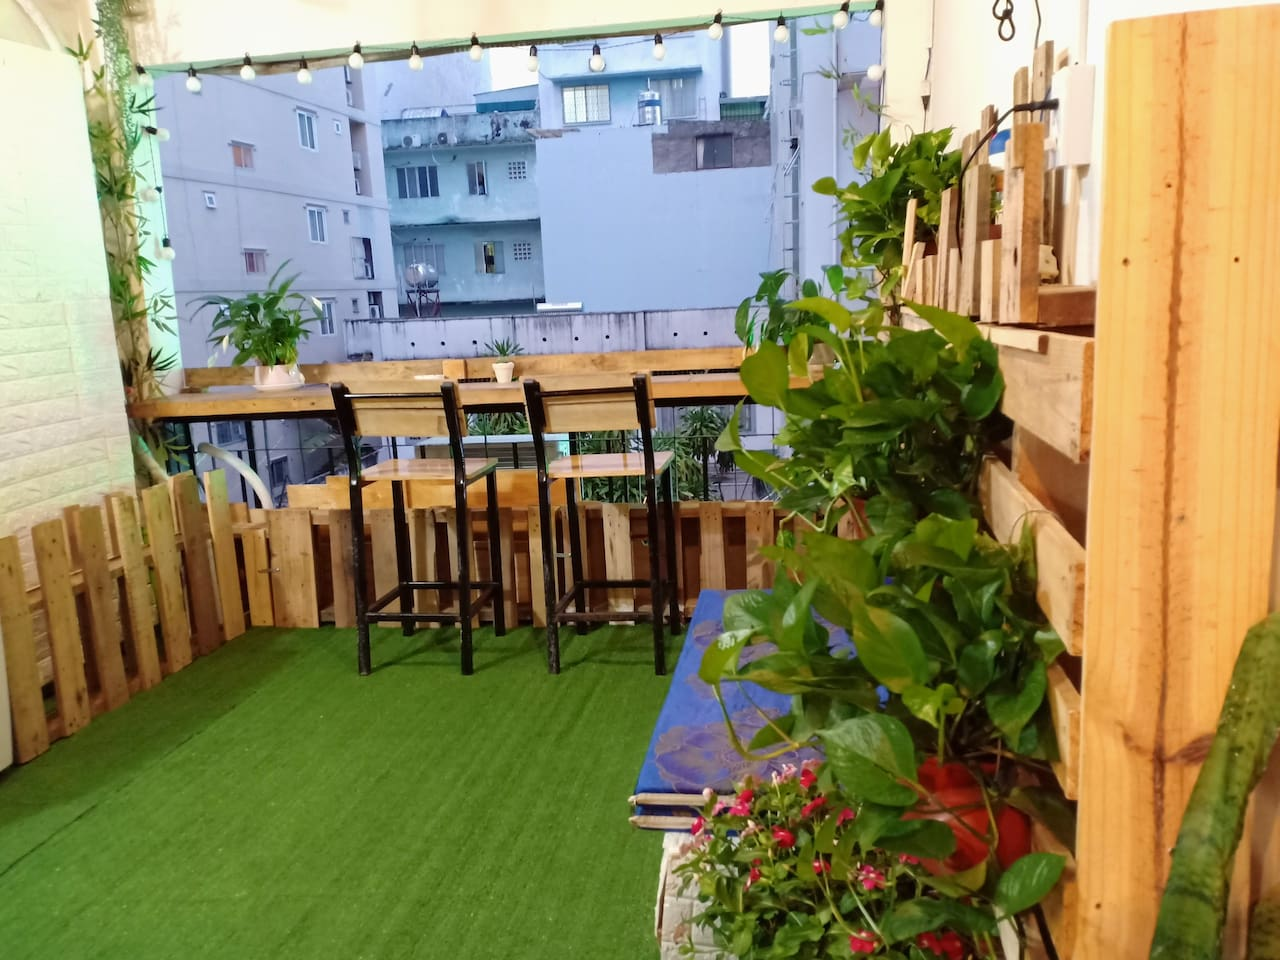 You can enjoy the beautiful terrace, with a small kitchen